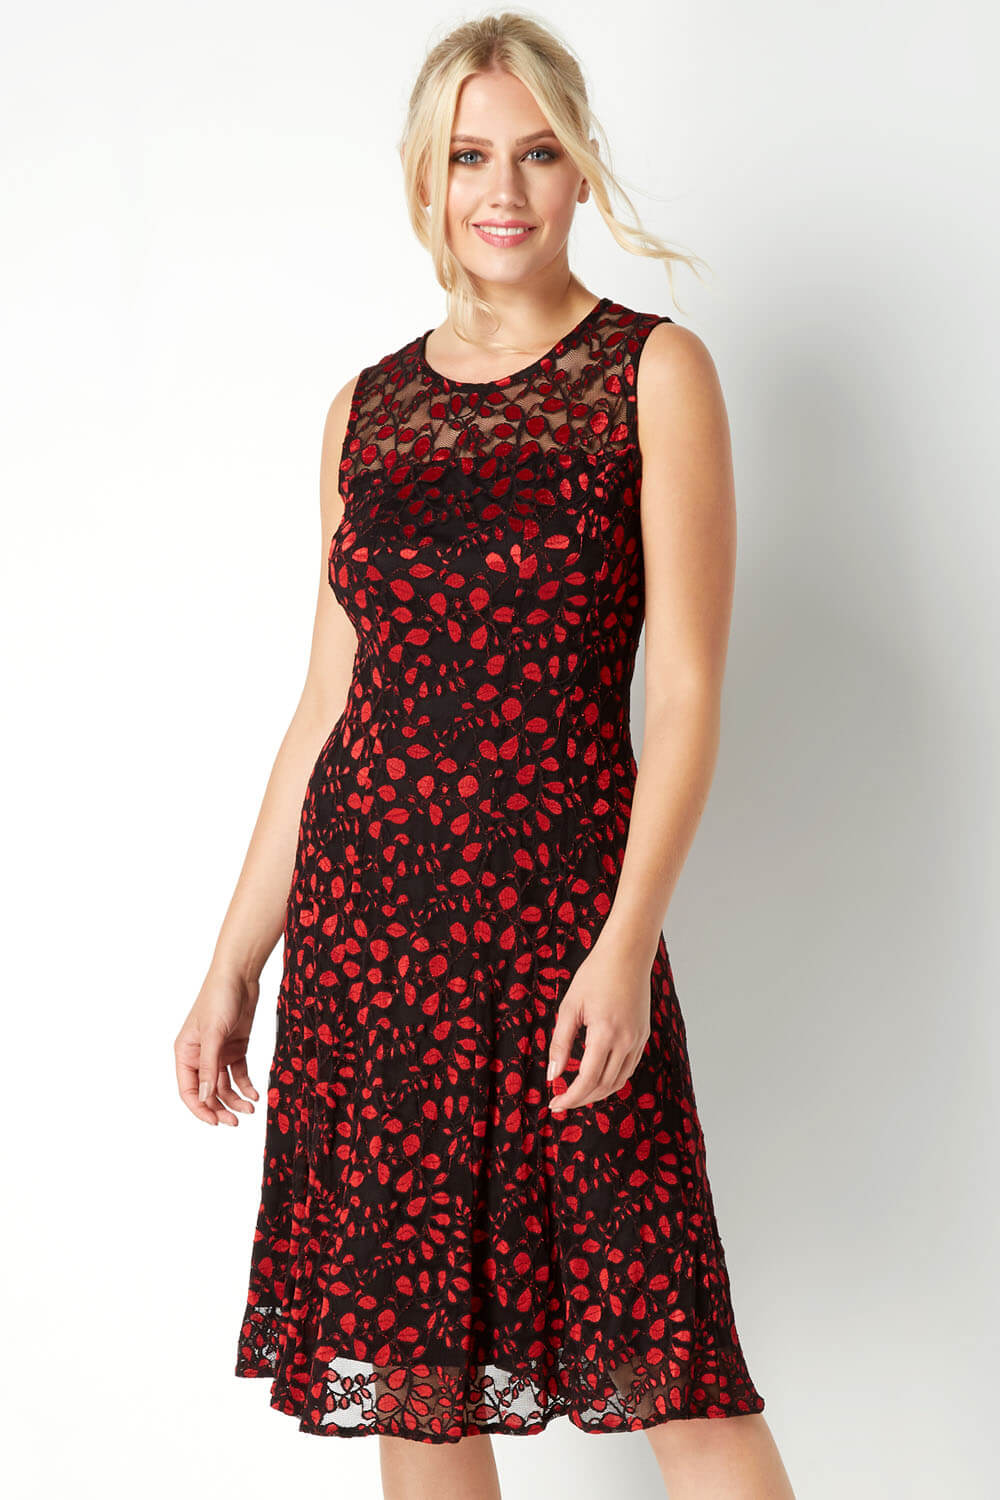 Roman-Originals-Women-Lace-Skater-Dress-in-Red-size-10-20